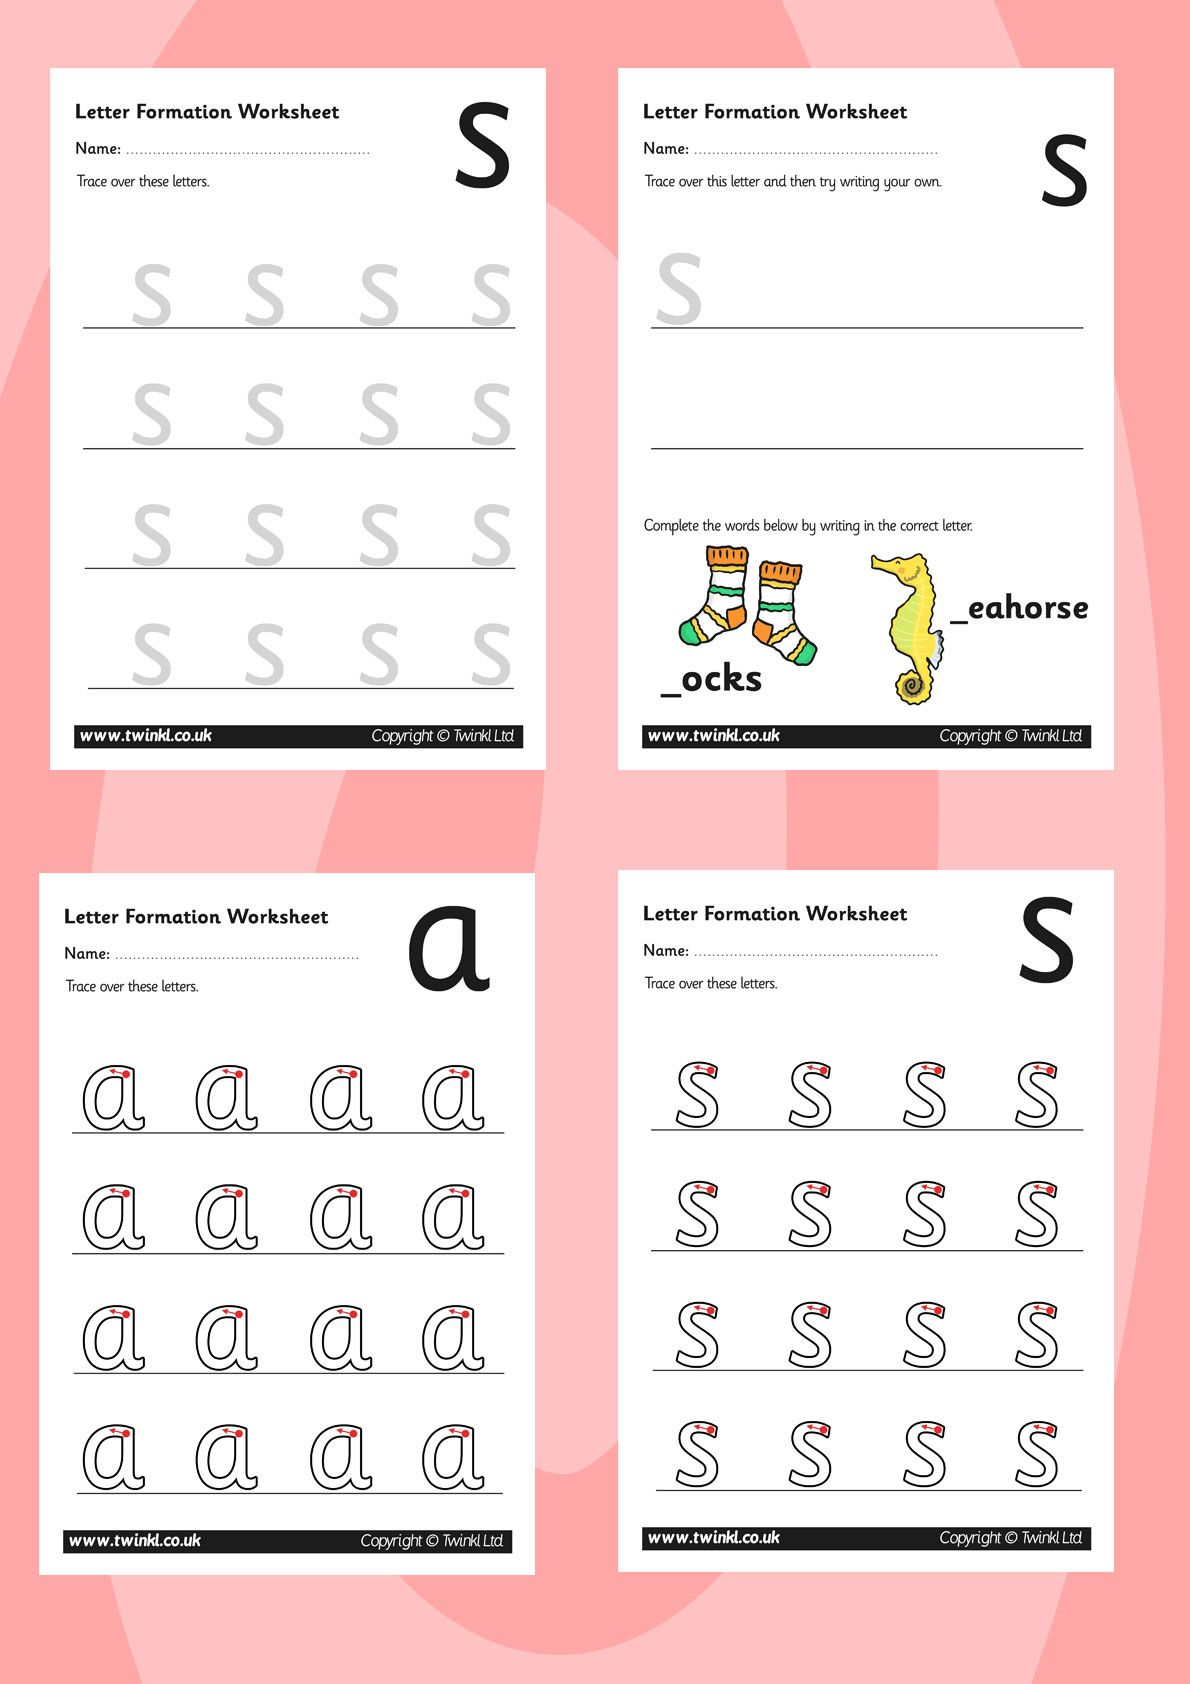 Twinkl Resources Gt Gt Phase 2 Letter Formation Worksheets